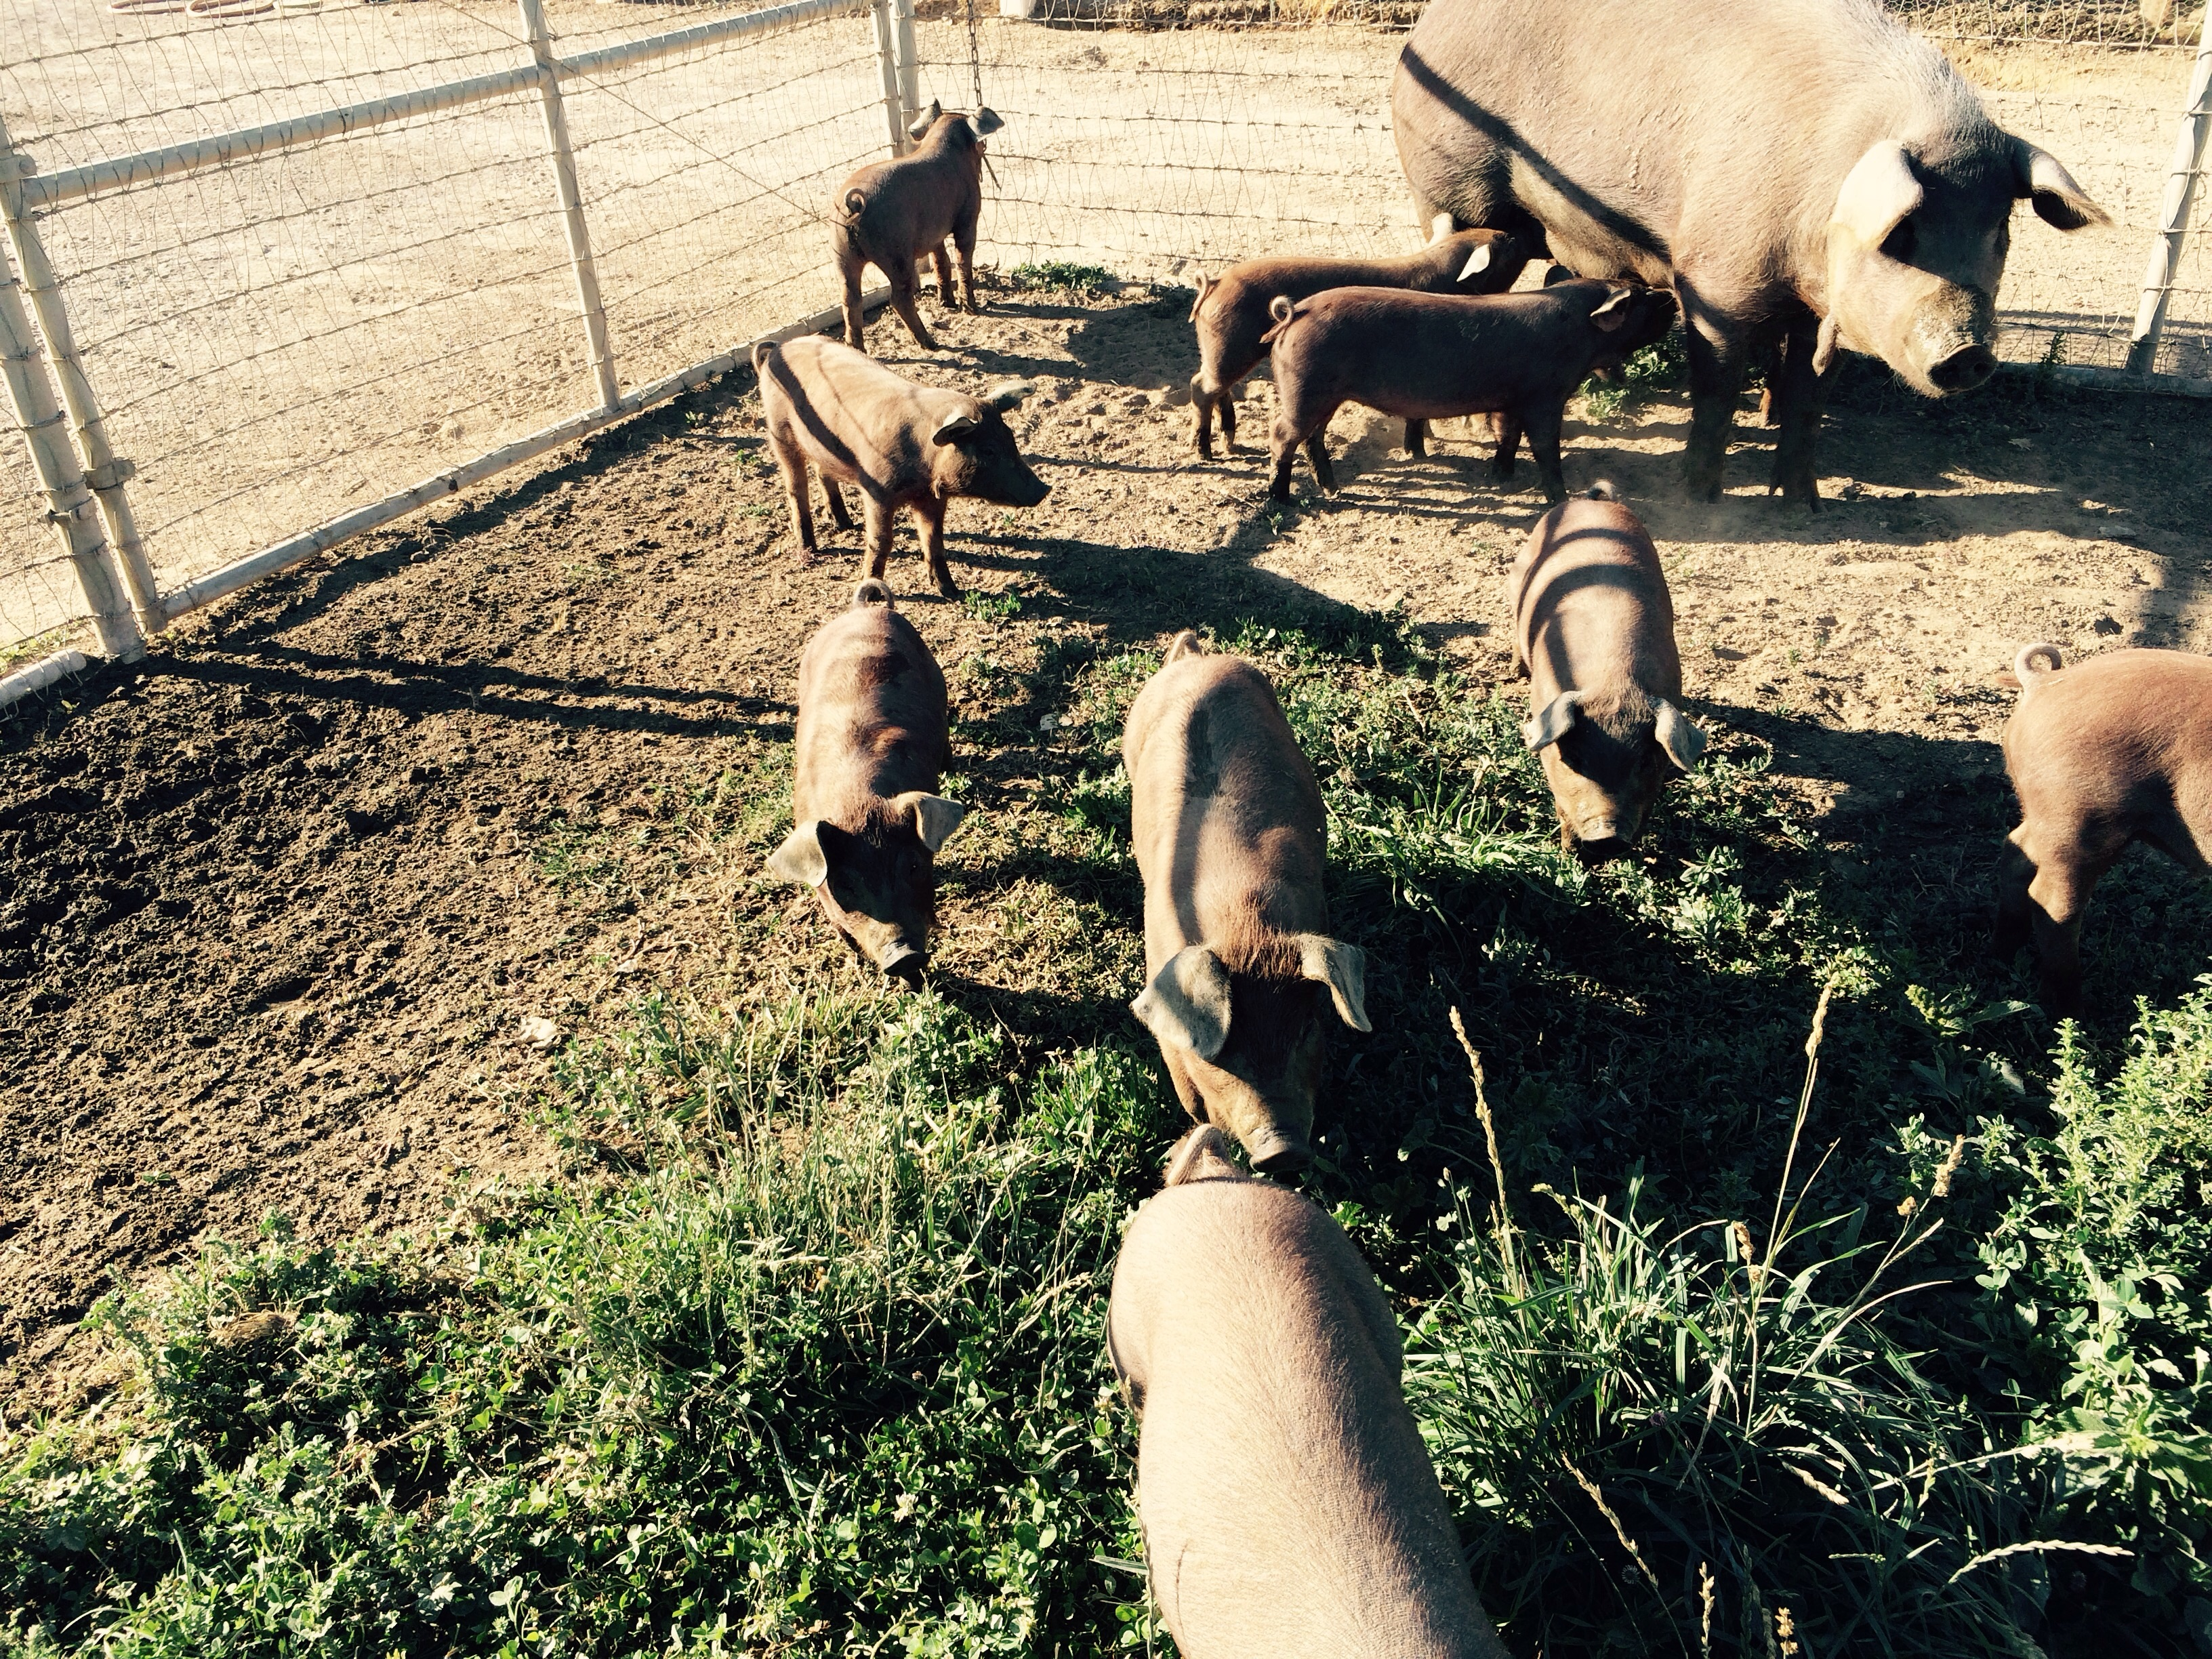 We have several suckling piglets ready to go please call if you are interested in the best